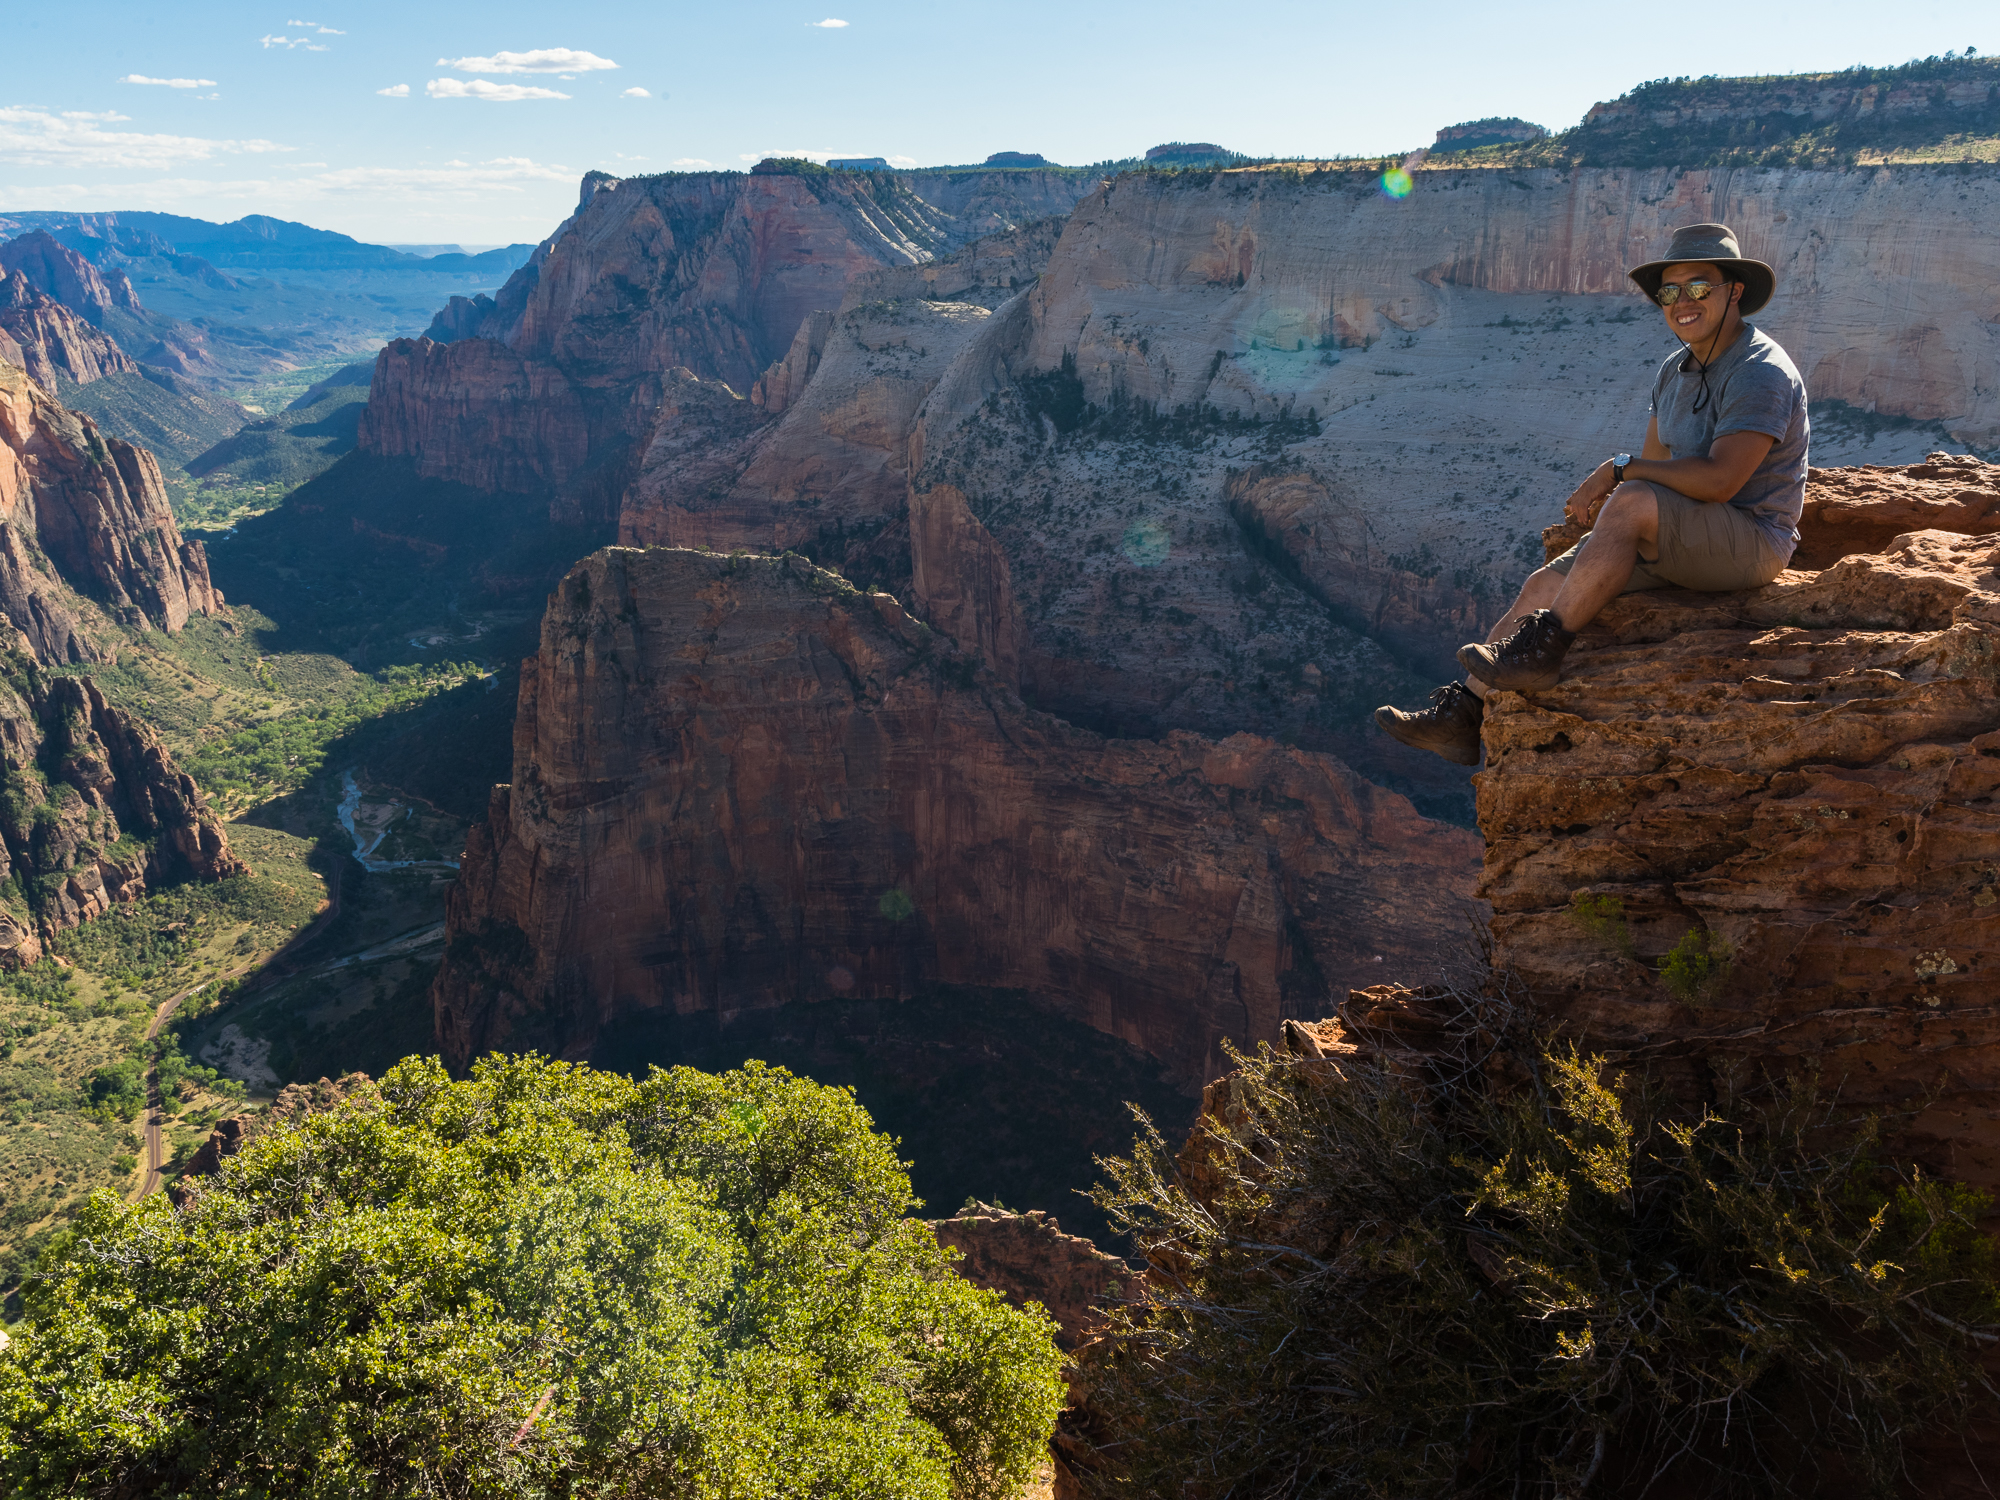 A 12 second timer and very careful rock hopping resulted in this photo at Observation Point in Zion National Park!